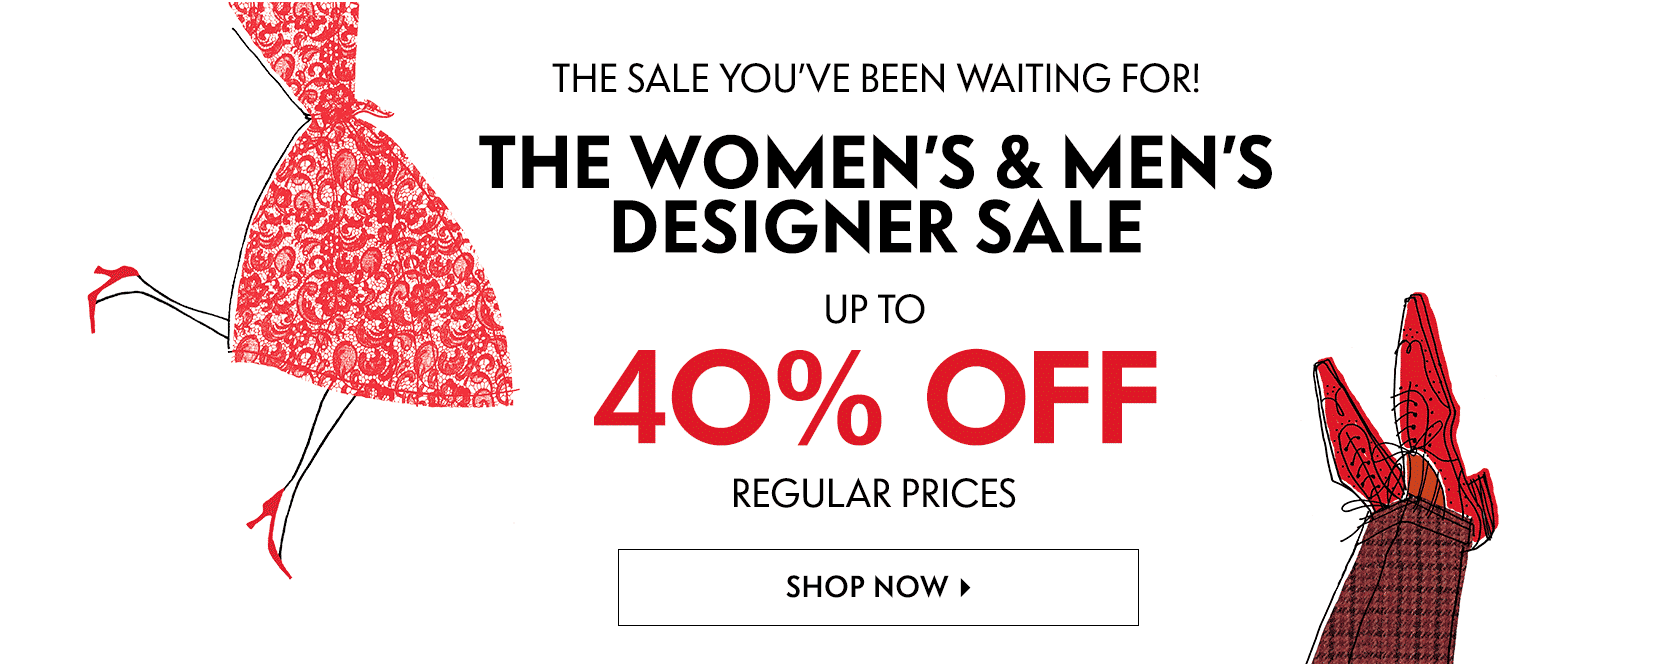 The sale you've been waiting for! The Women's and Men's Designer Sale up to 40% off regular prices